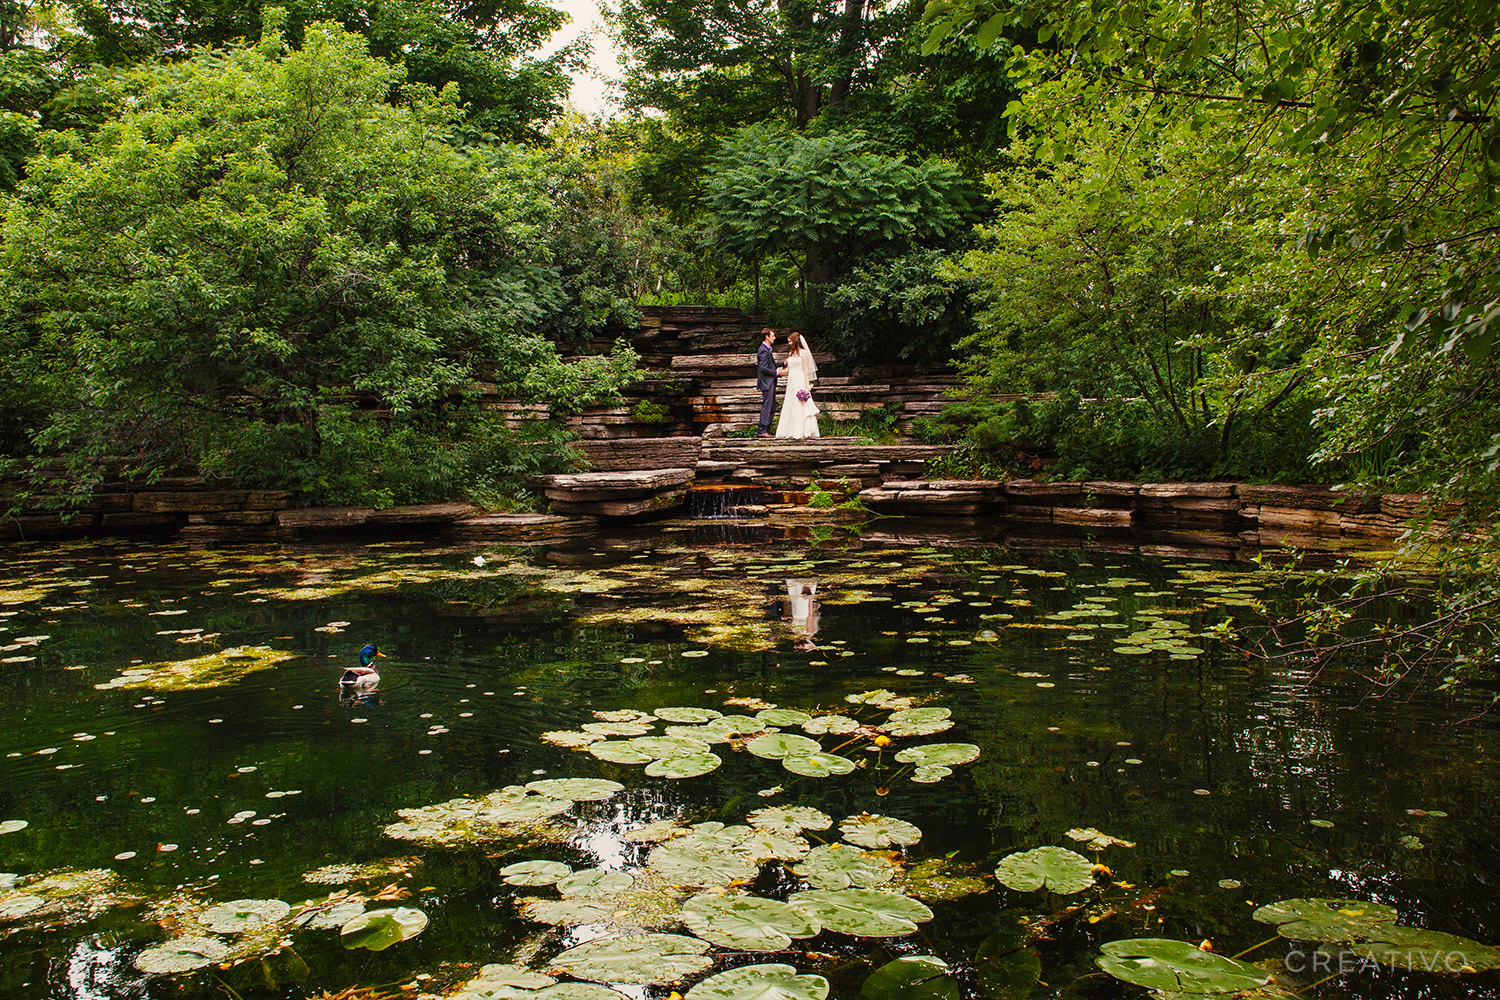 16. A nature elopement at a historic landmark lily pond in Chicago